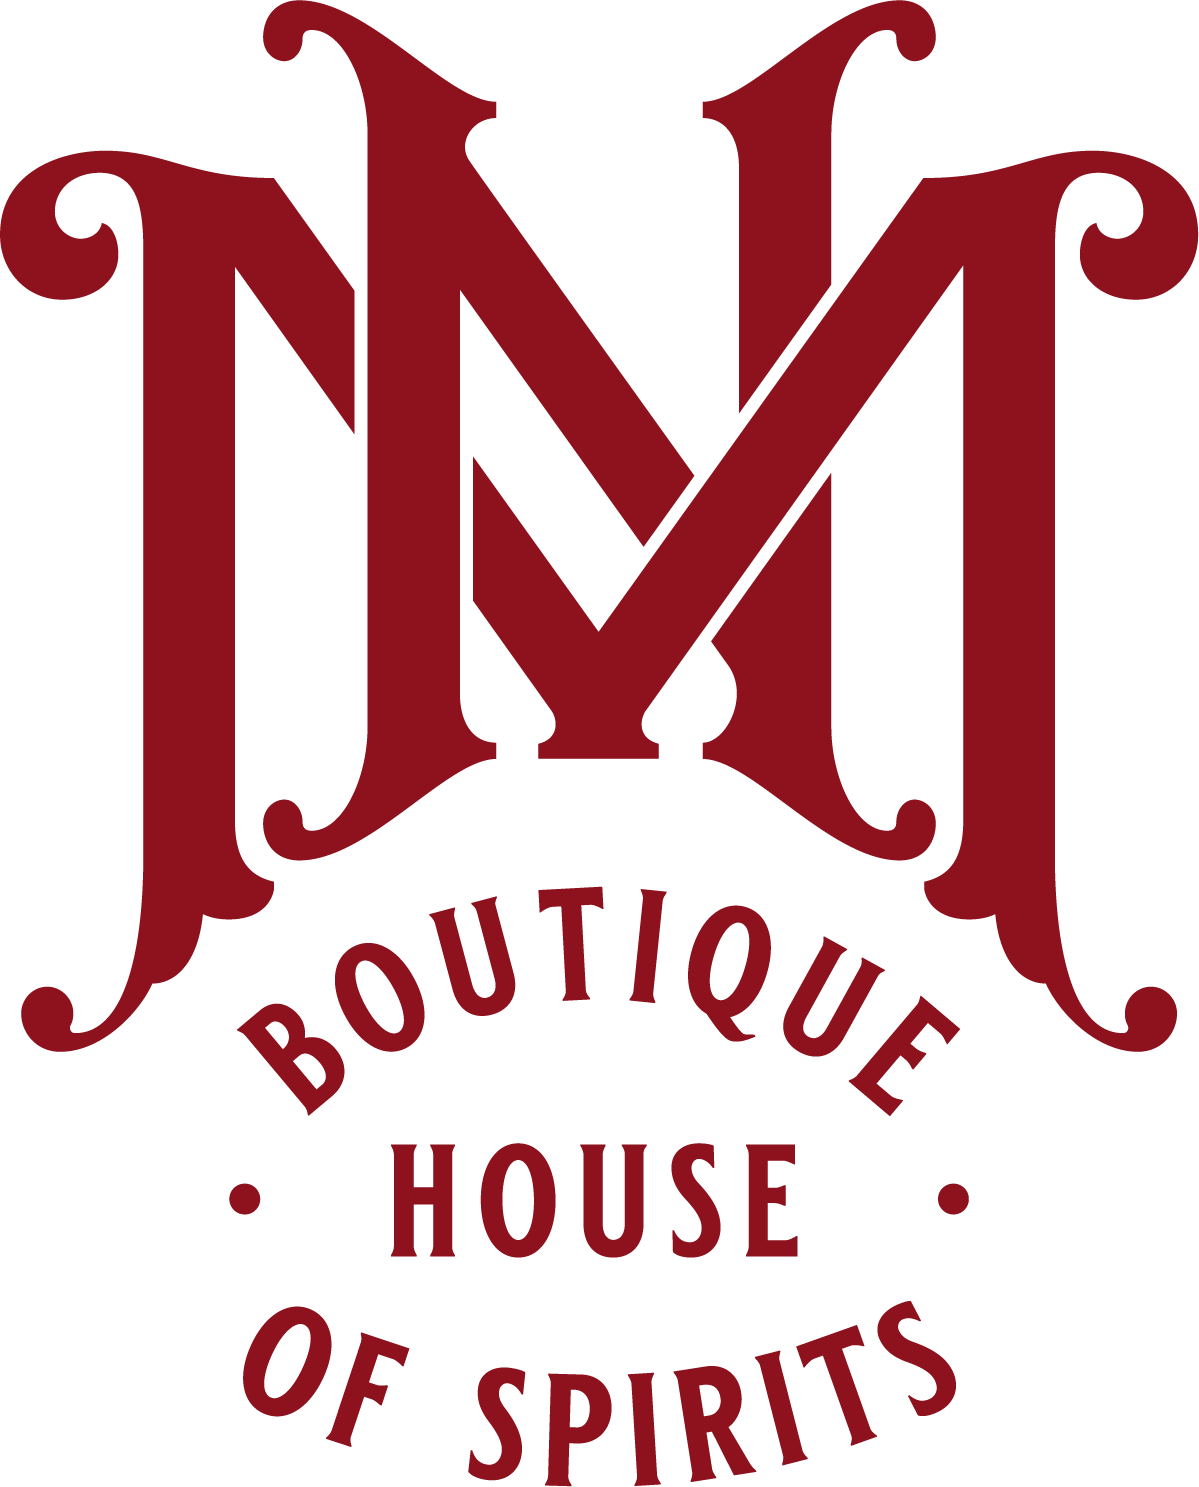 MacNair's Boutique House of Spirits